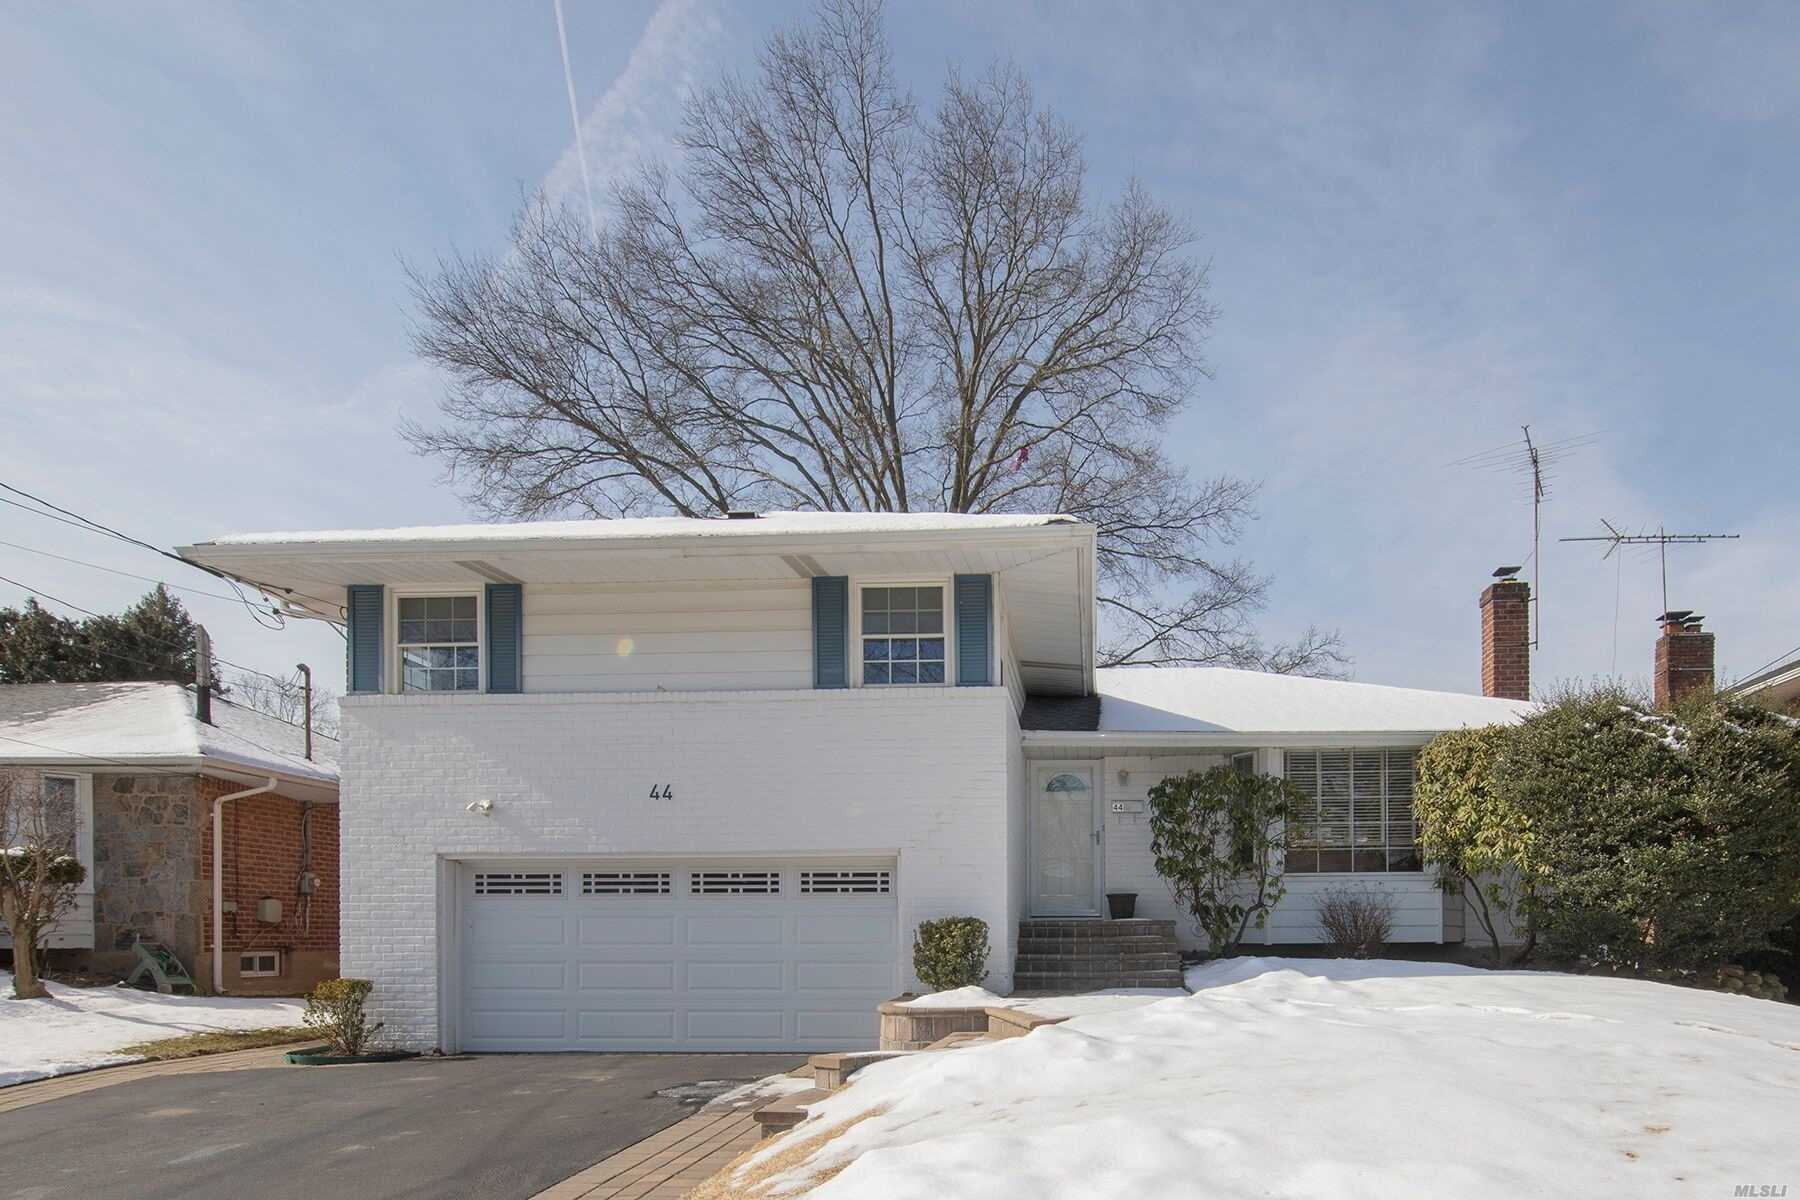 Welcome To The Prestigious Westbury Hills Section of Westbury. This Beautifully Maintained Split Level Home Boasts 3 Bedrooms and 2 1/2 Baths. Hardwood Floors And Updates Throughout! Perfectly Situated Mid Block In This Very Charming Quiet Neighborhood.